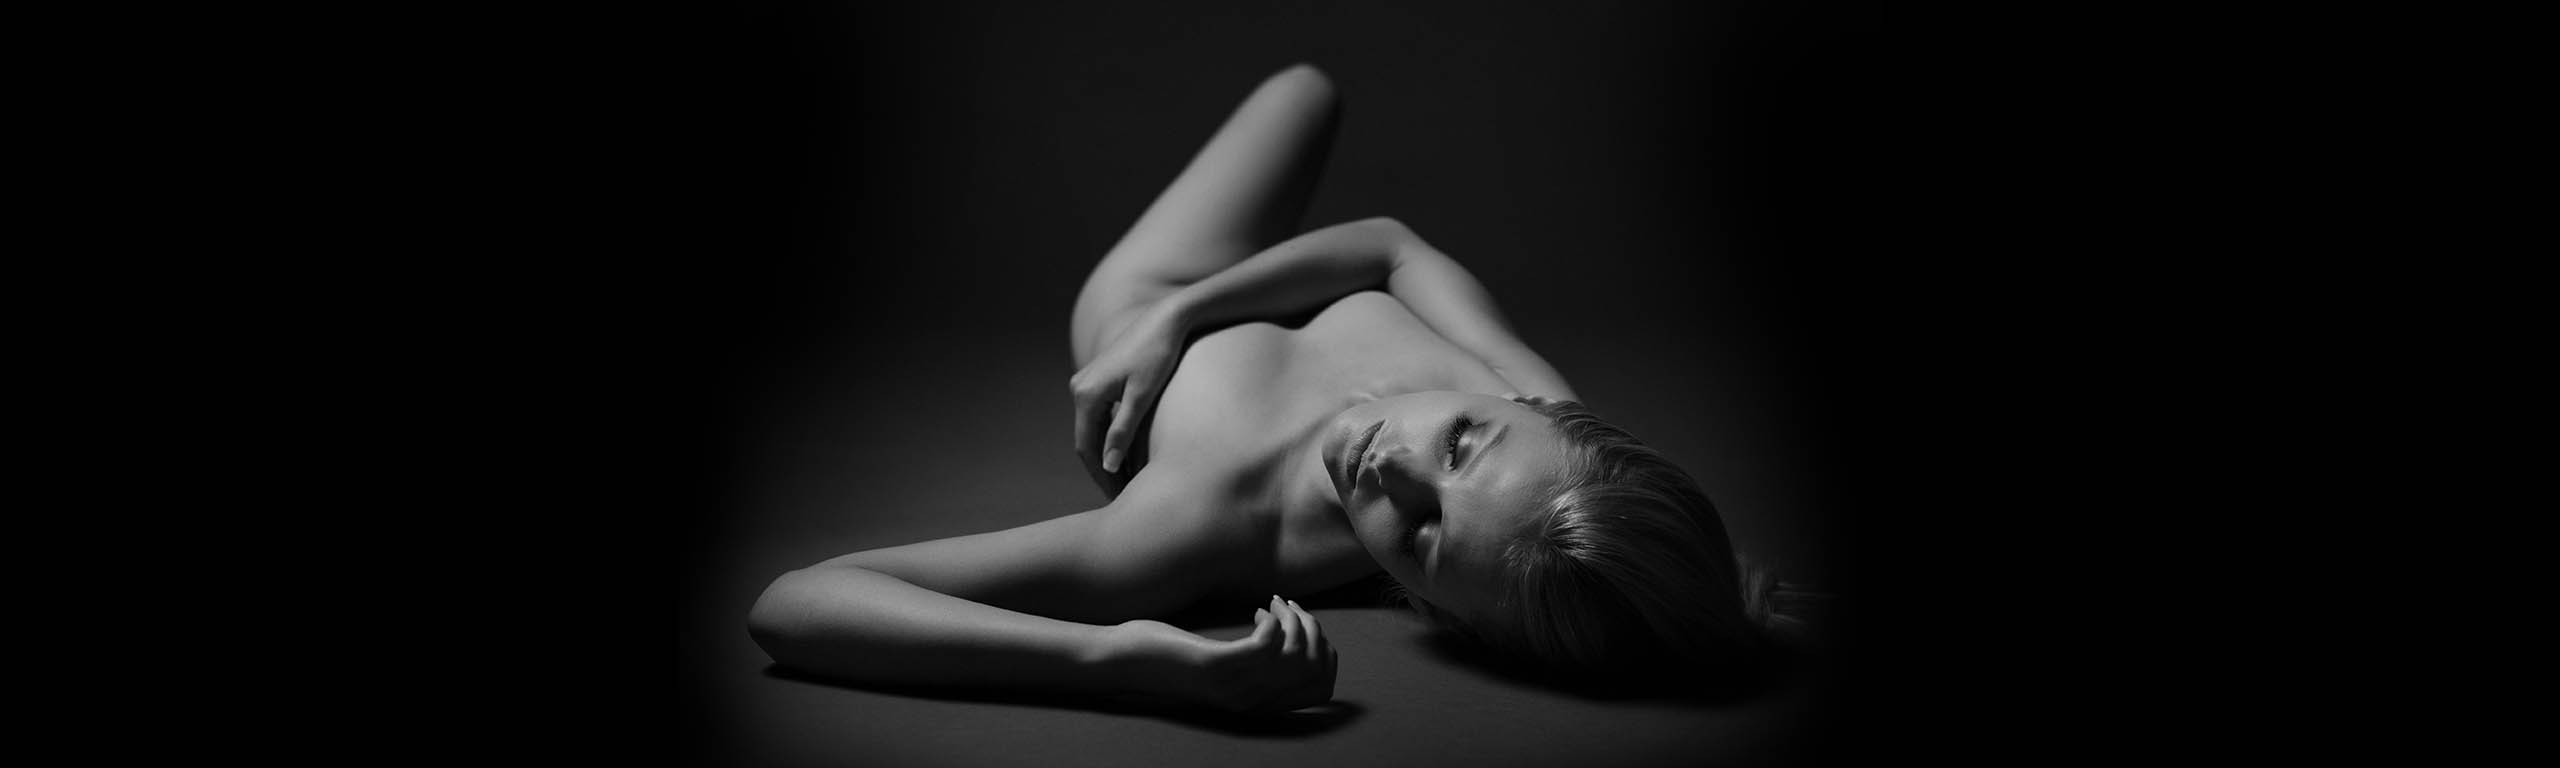 Artistic nude photo of woman